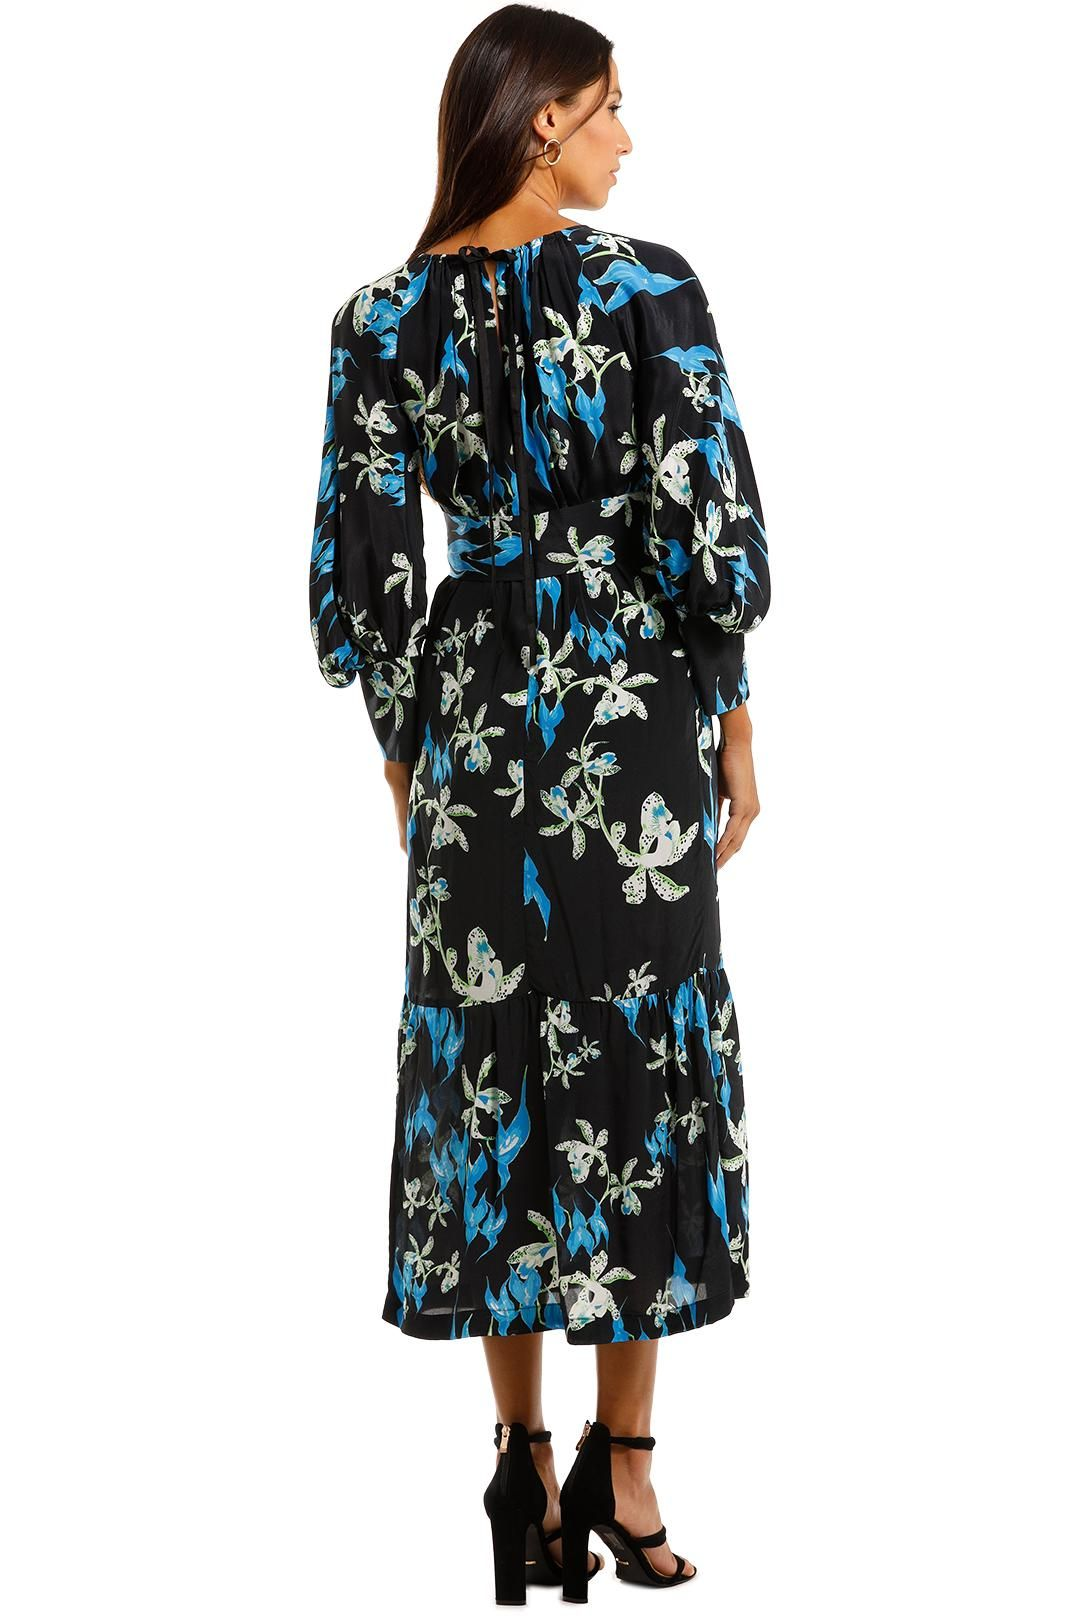 KITX Restoration Blue Midi Dress Floral Print Long Sleeve